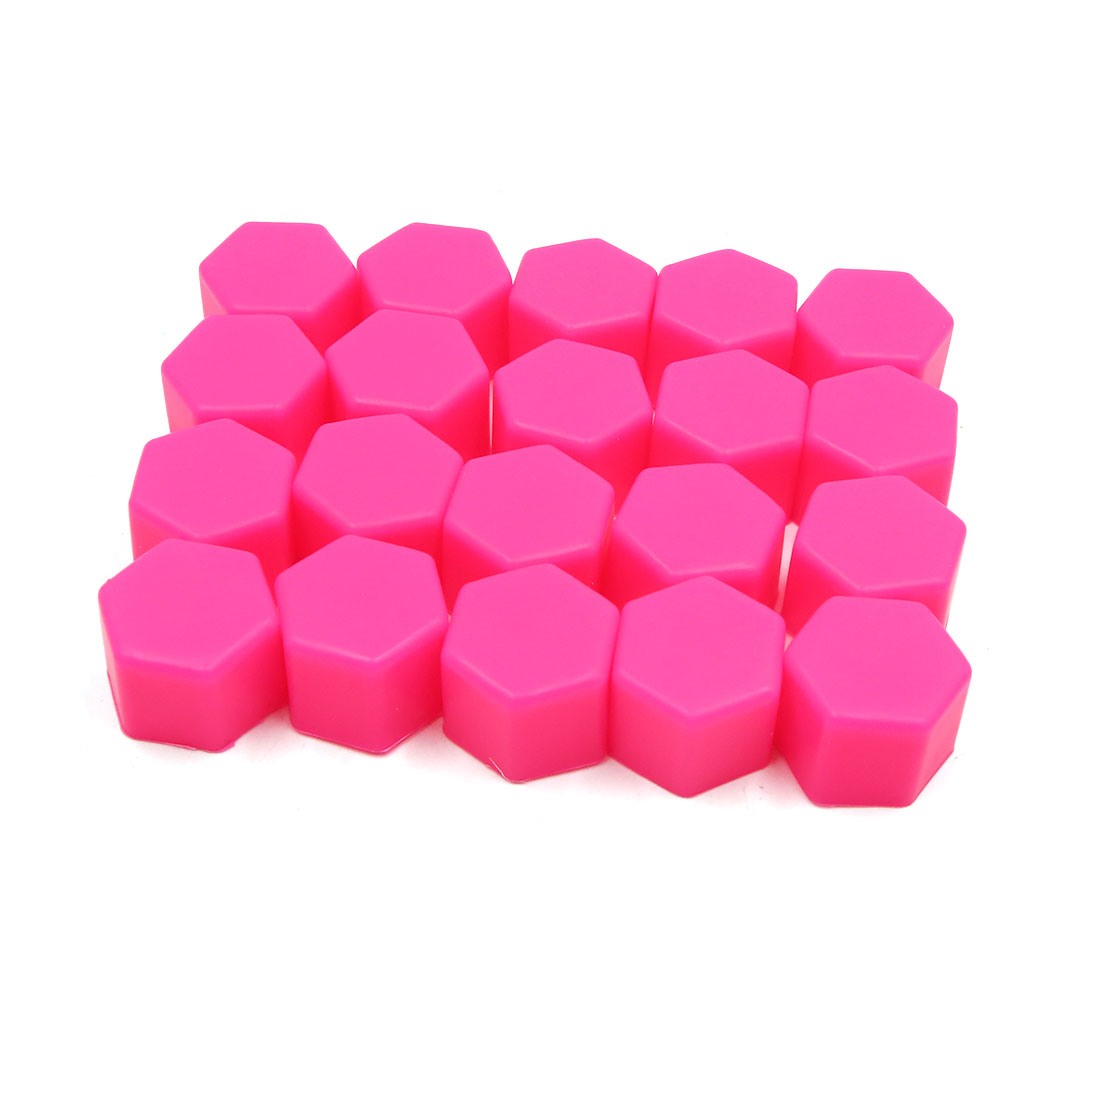 20pcs 21mm Car Wheel Tire Nut Screw Lug Dust Cover Caps Hub Protector Pink